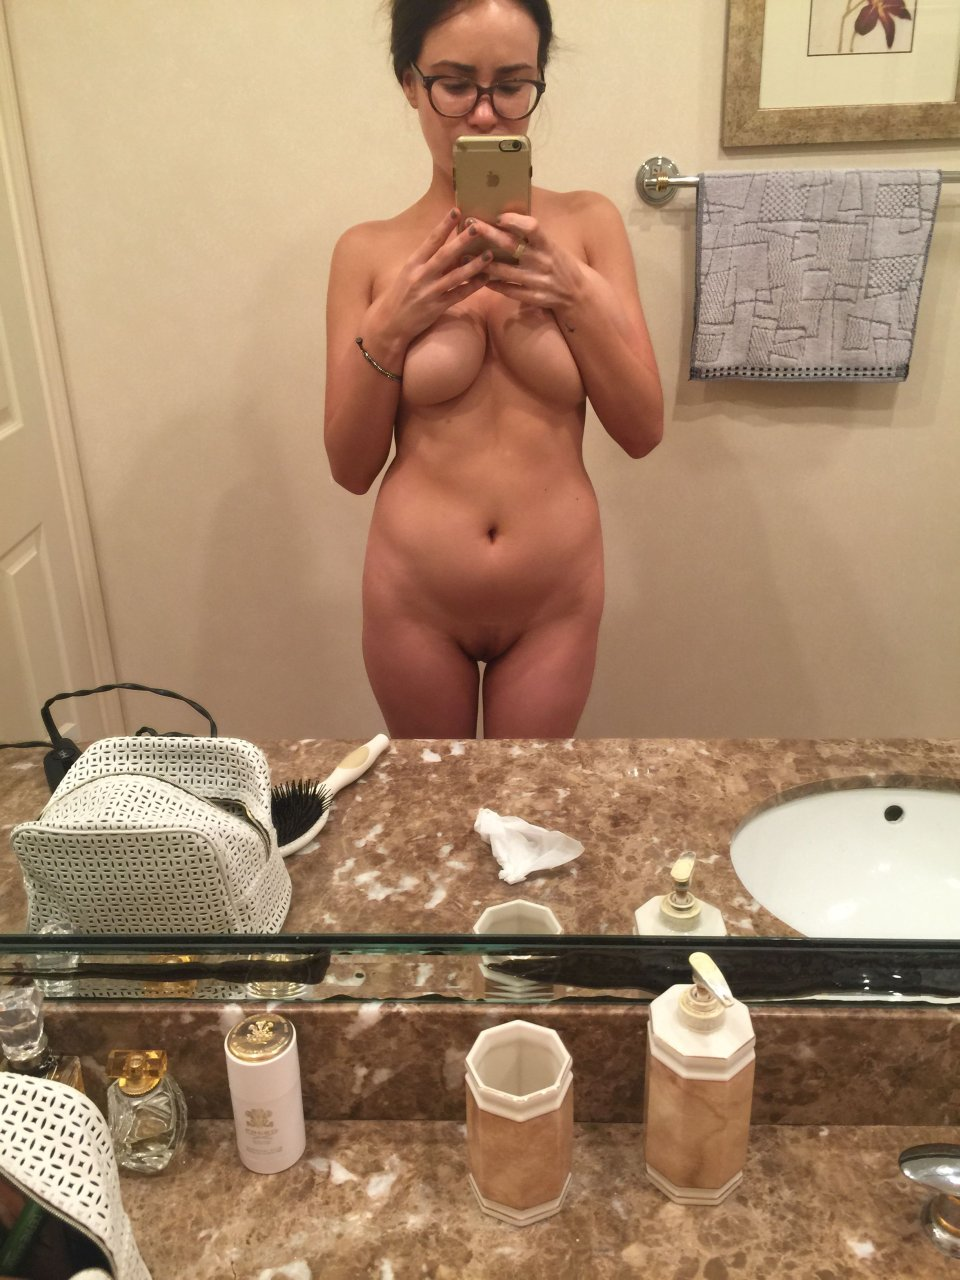 Osrs nudes emily